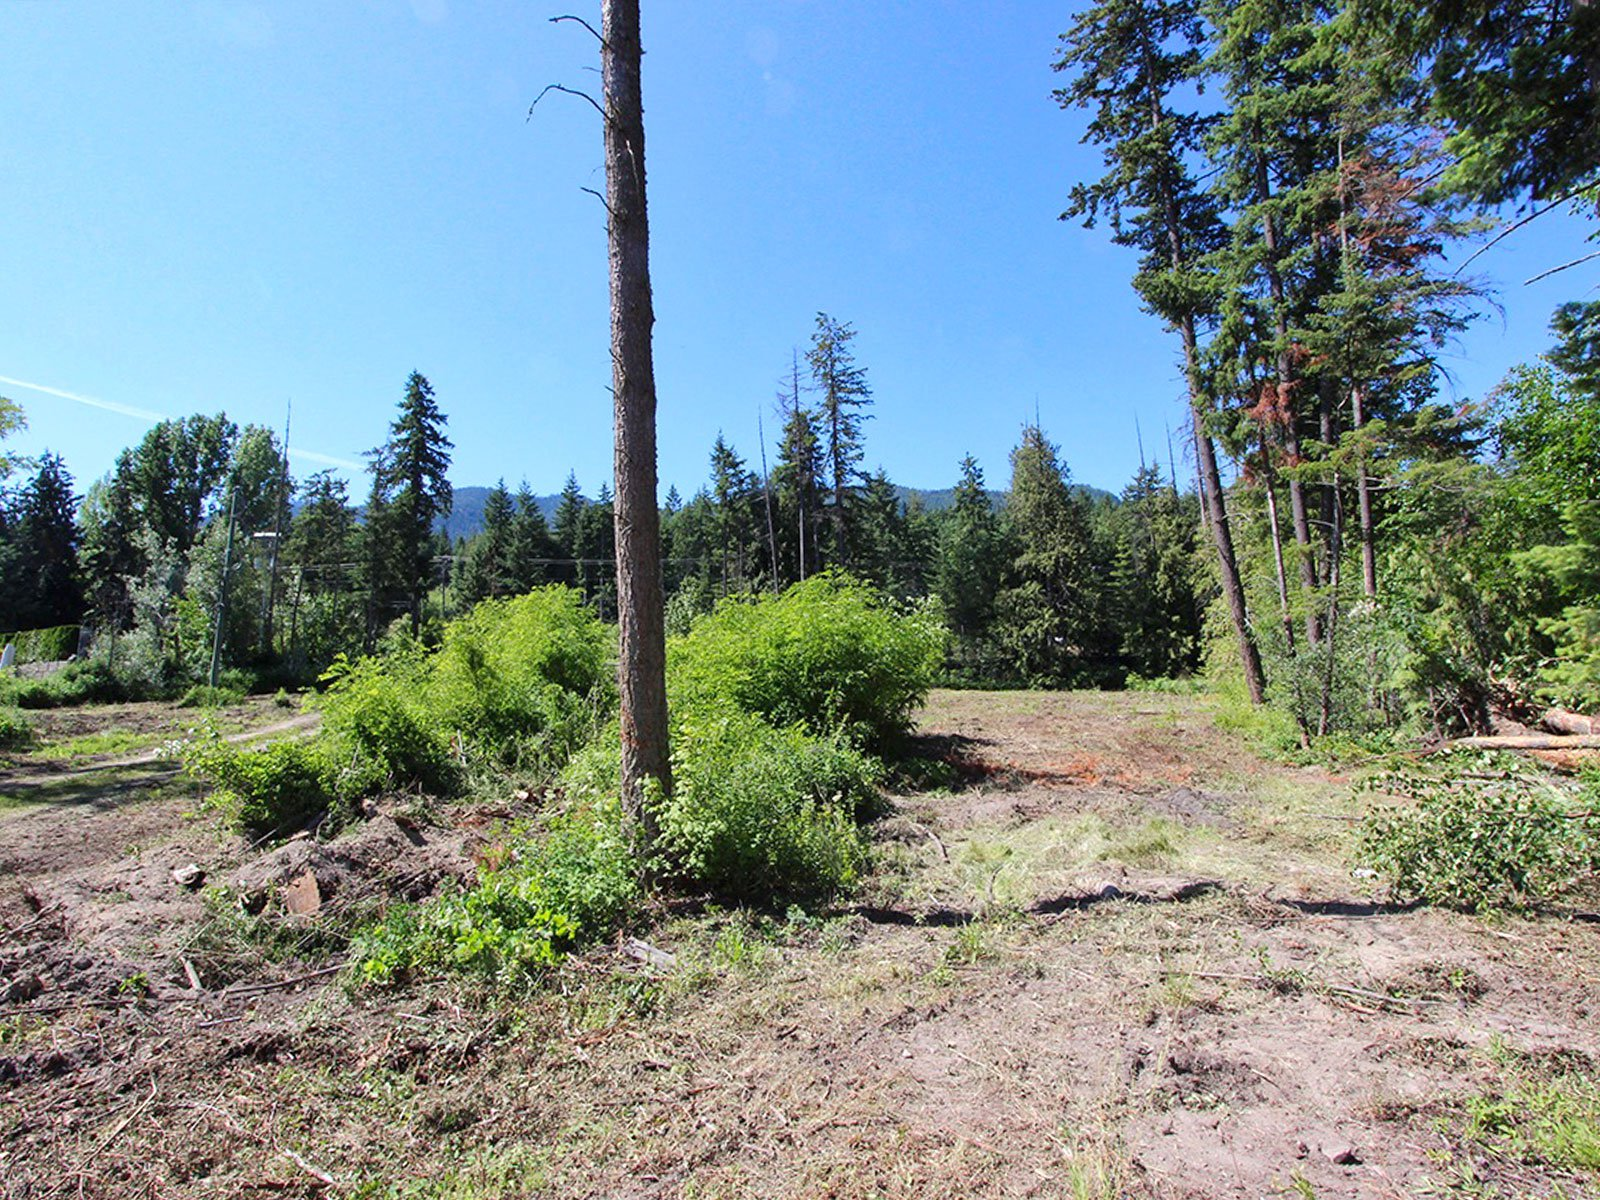 Photo 23: Photos: 663 Waverly Park Frontage Road in Sorrento, BC: Land Only for sale (Sorrento)  : MLS®# 10186241